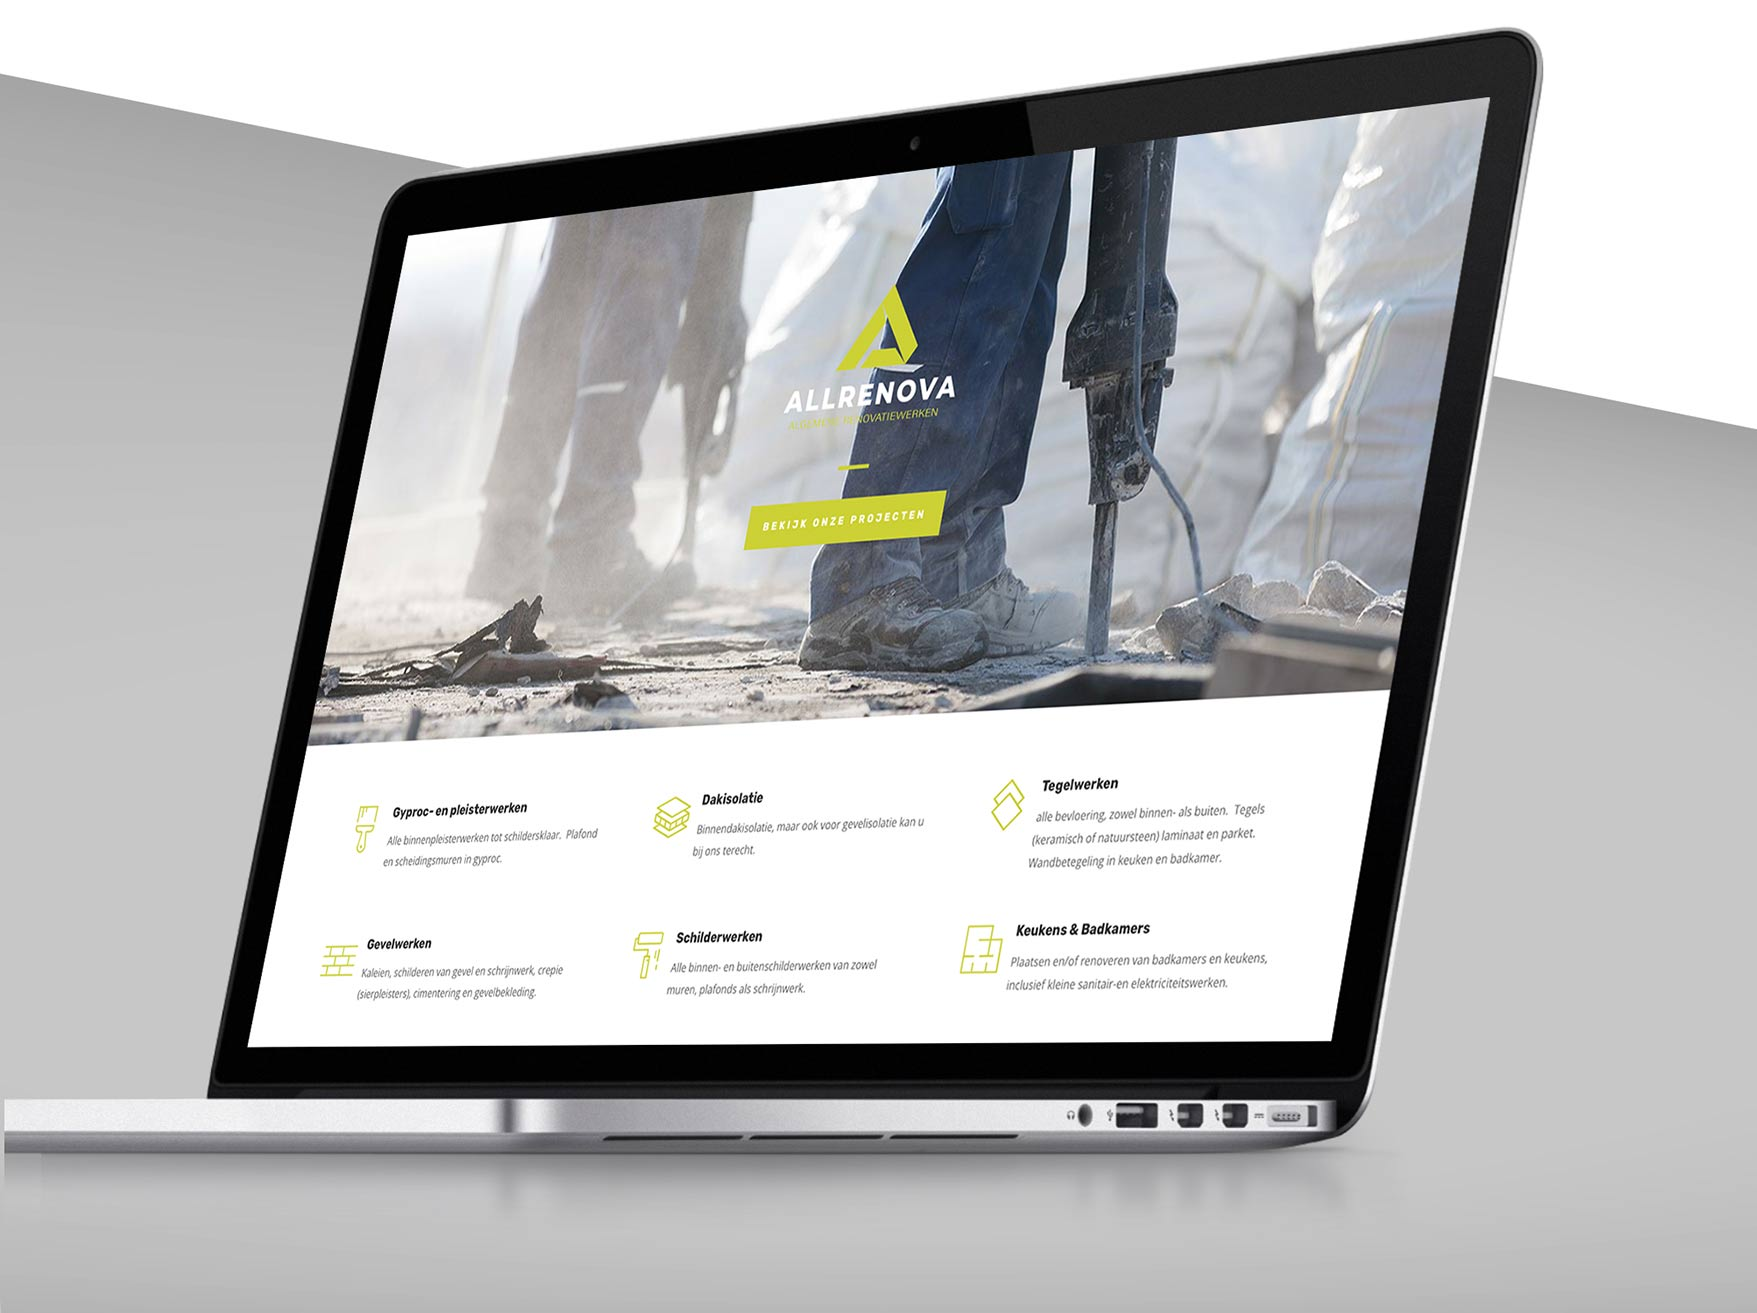 mark-up-gent-webdesign-allrenova-macbookpro